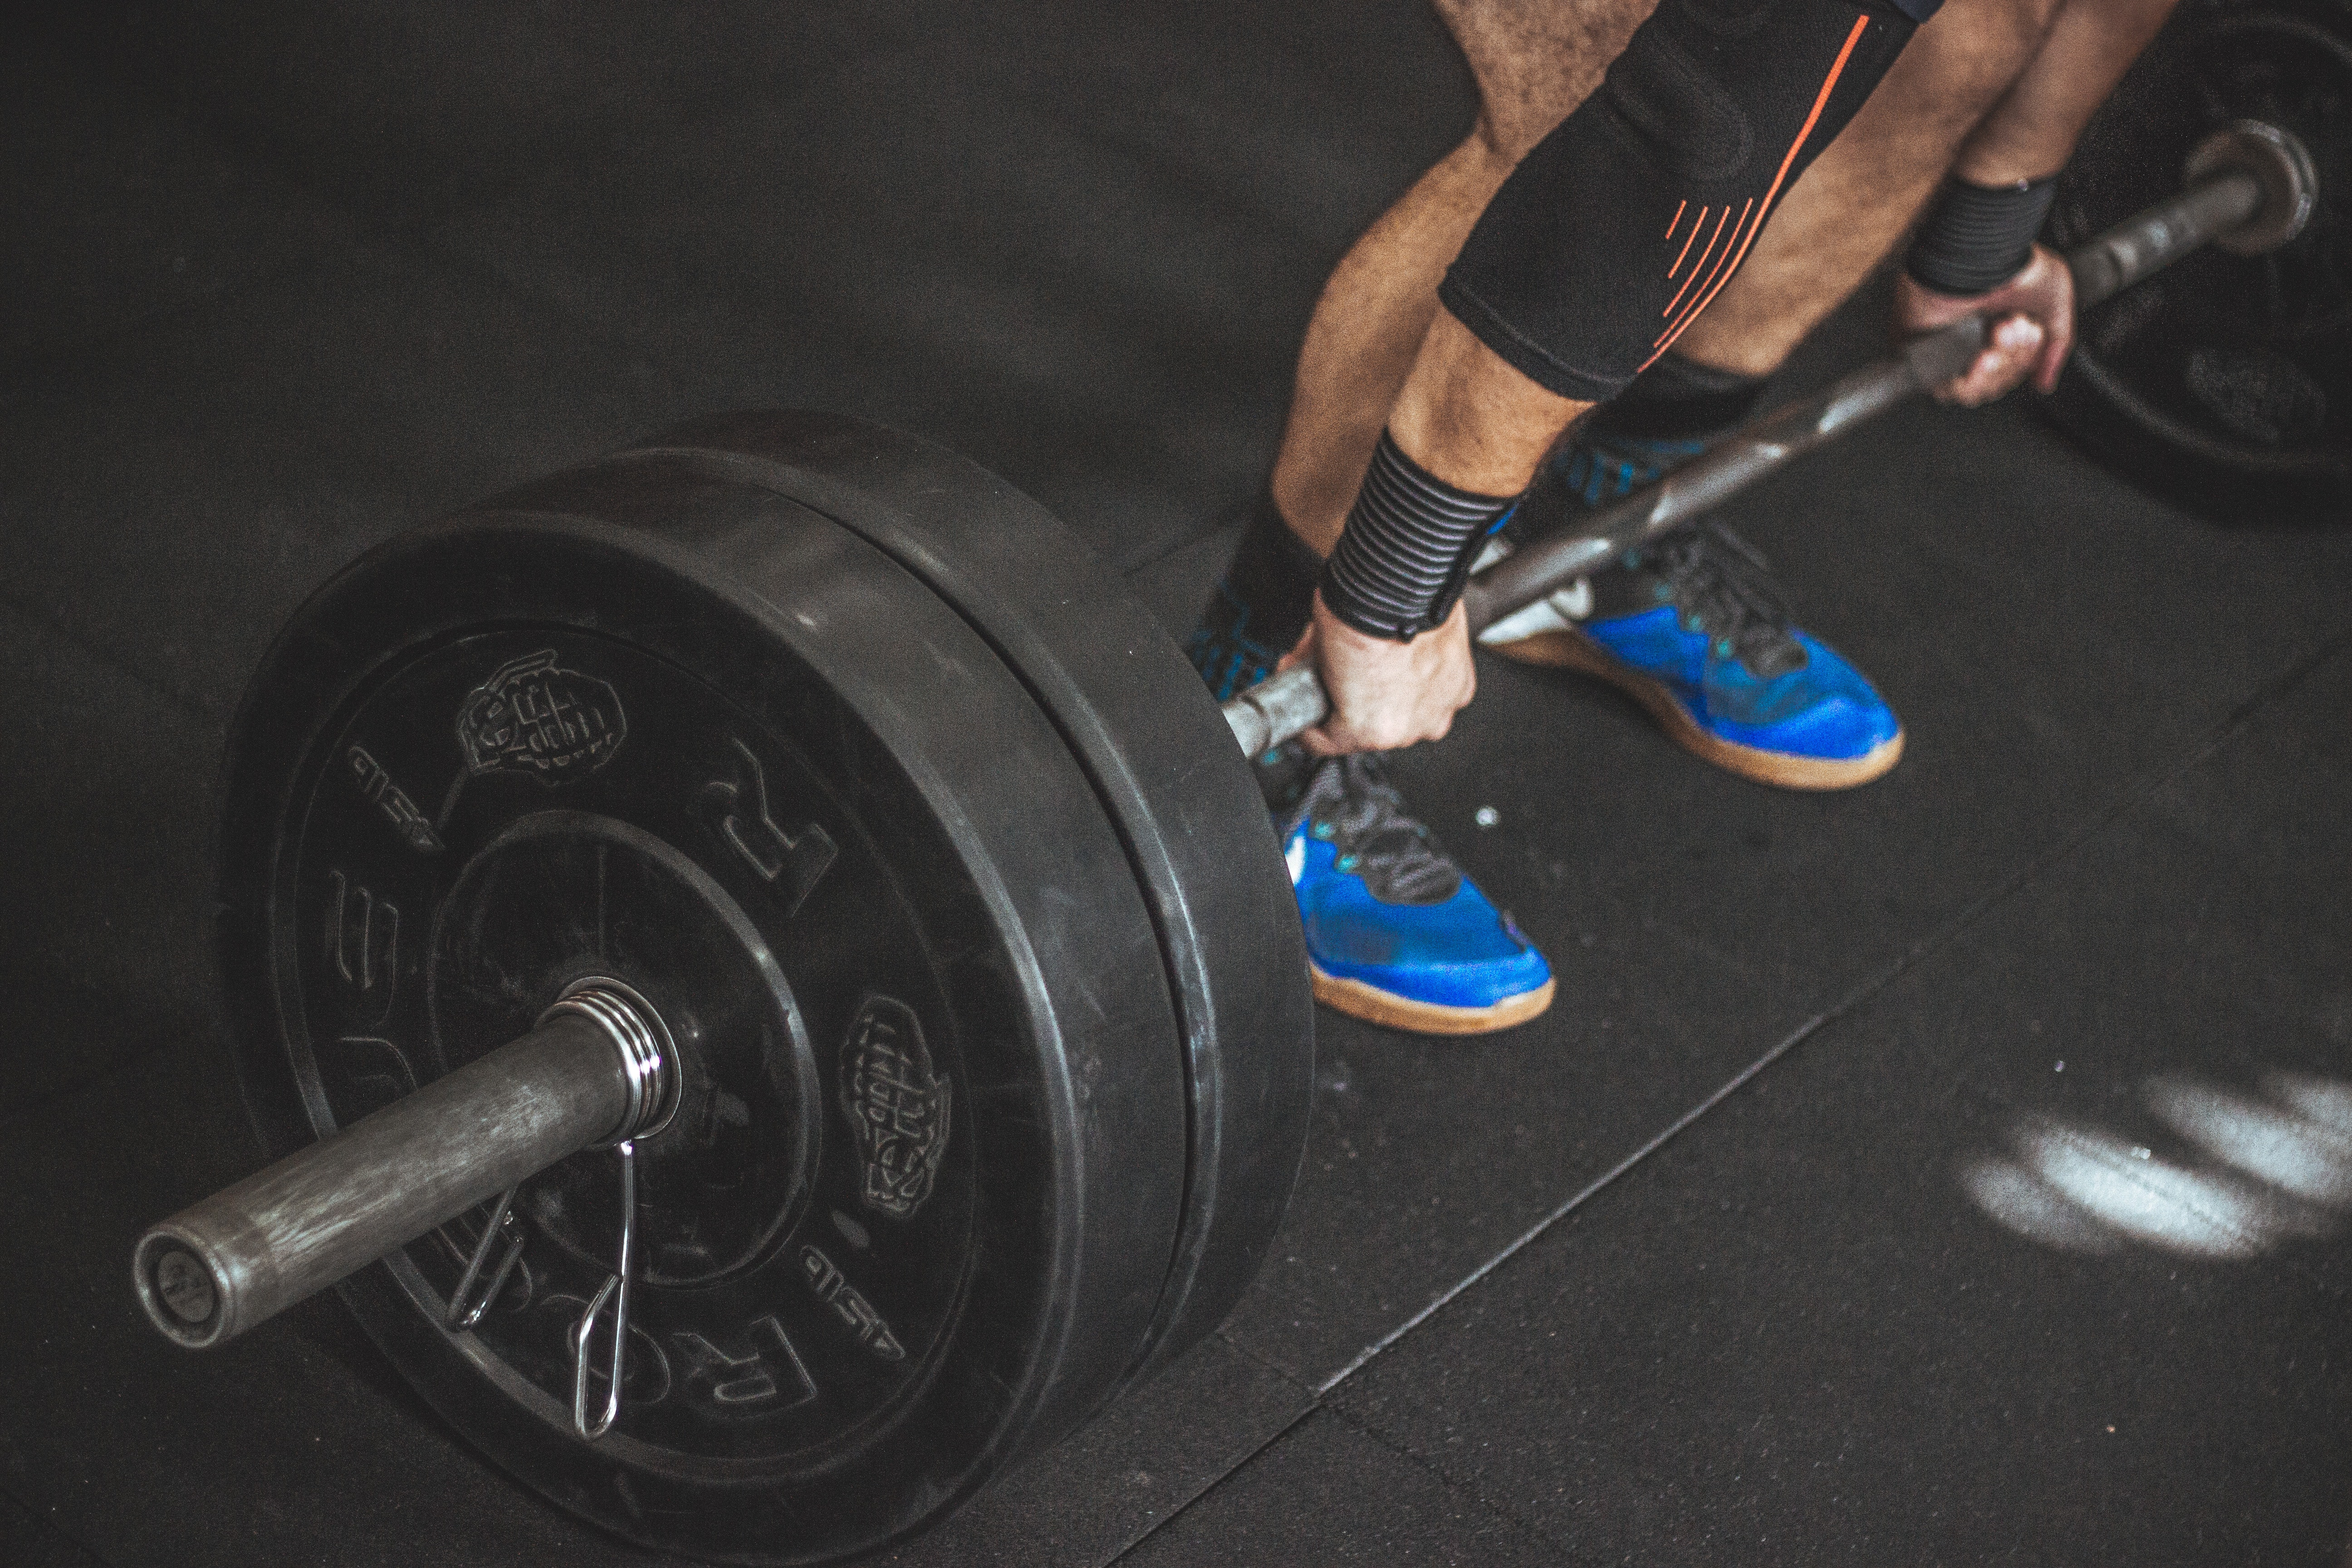 Close-up of a person's lower body holding barbell photo